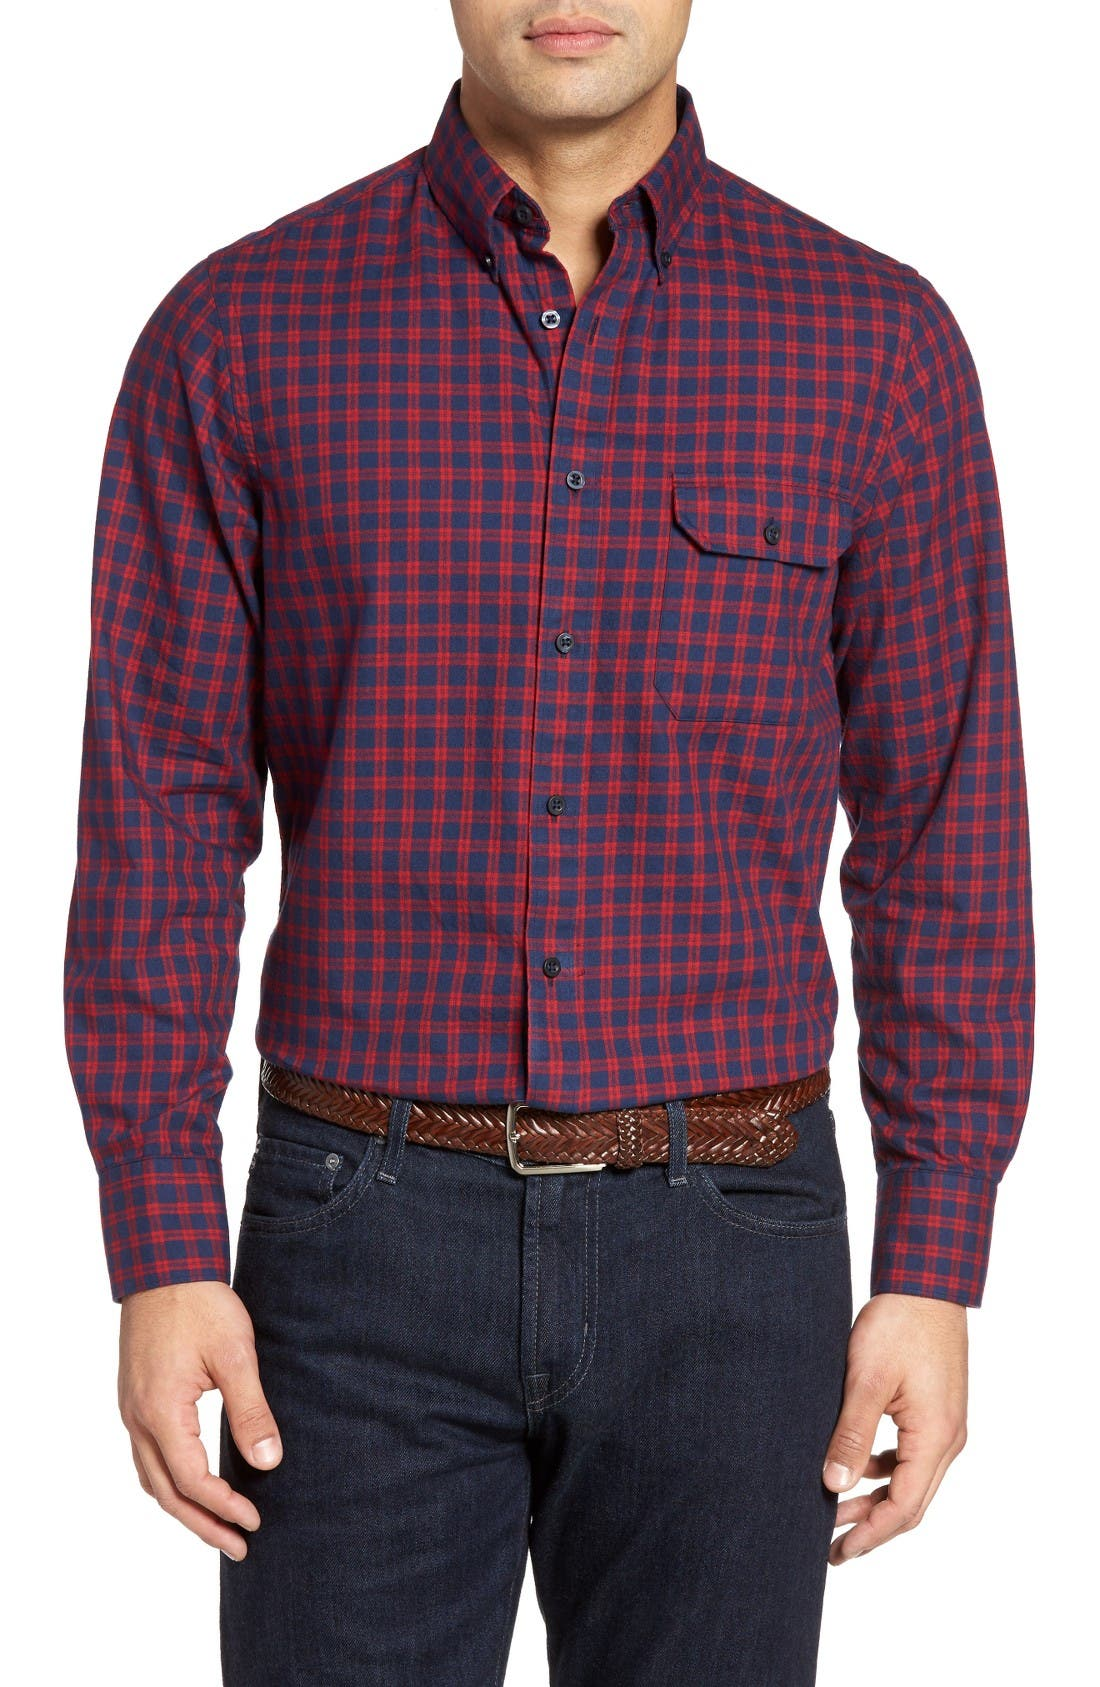 Alternate Image 1 Selected - Nordstrom Men's Shop Classic Regular Fit Plaid Flannel Sport Shirt (Regular & Tall)